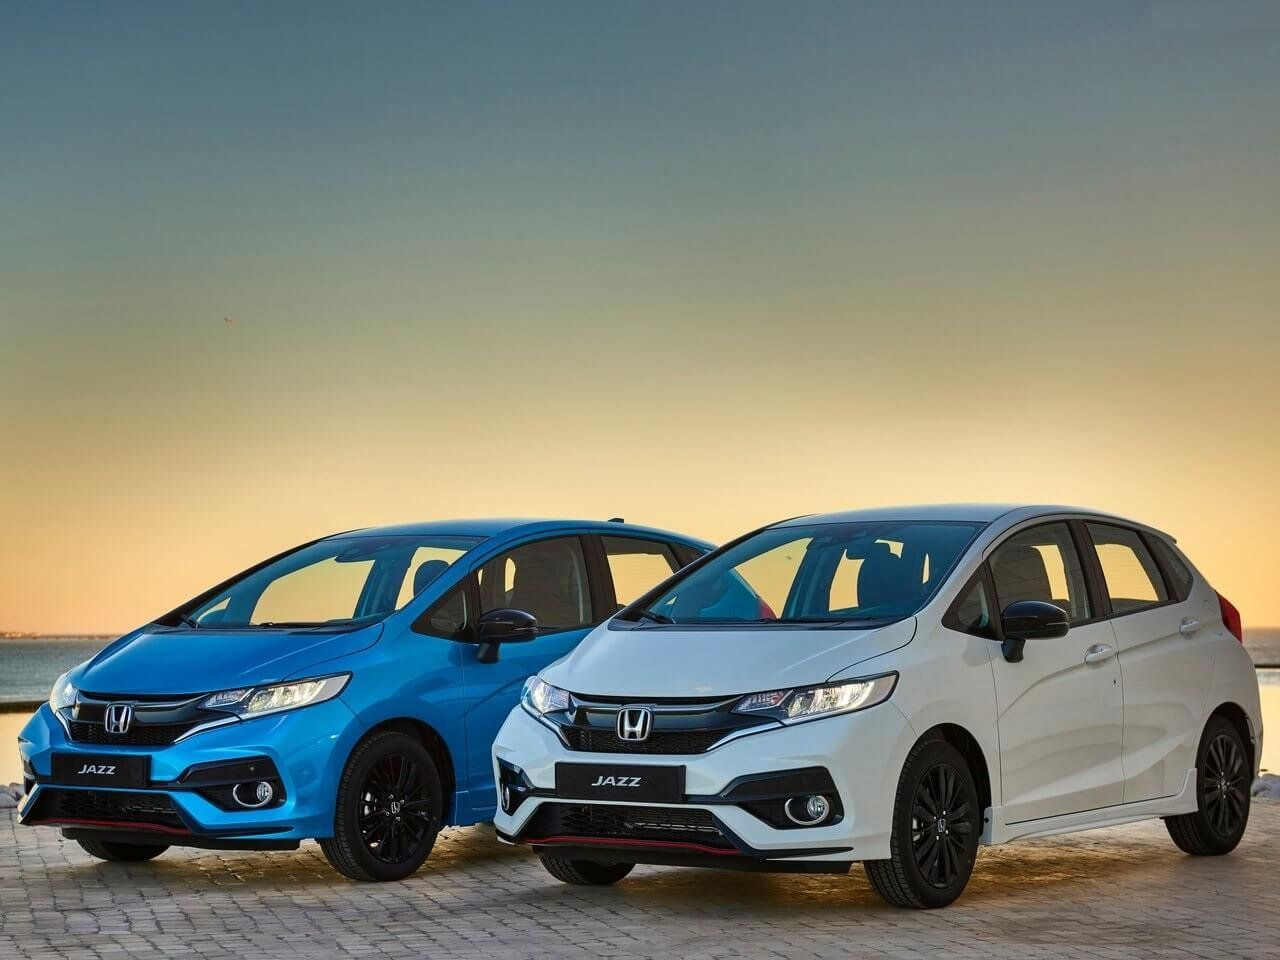 Honda Fit Redesign 2020 Price And Review From 2020 Honda Fit Hybrid